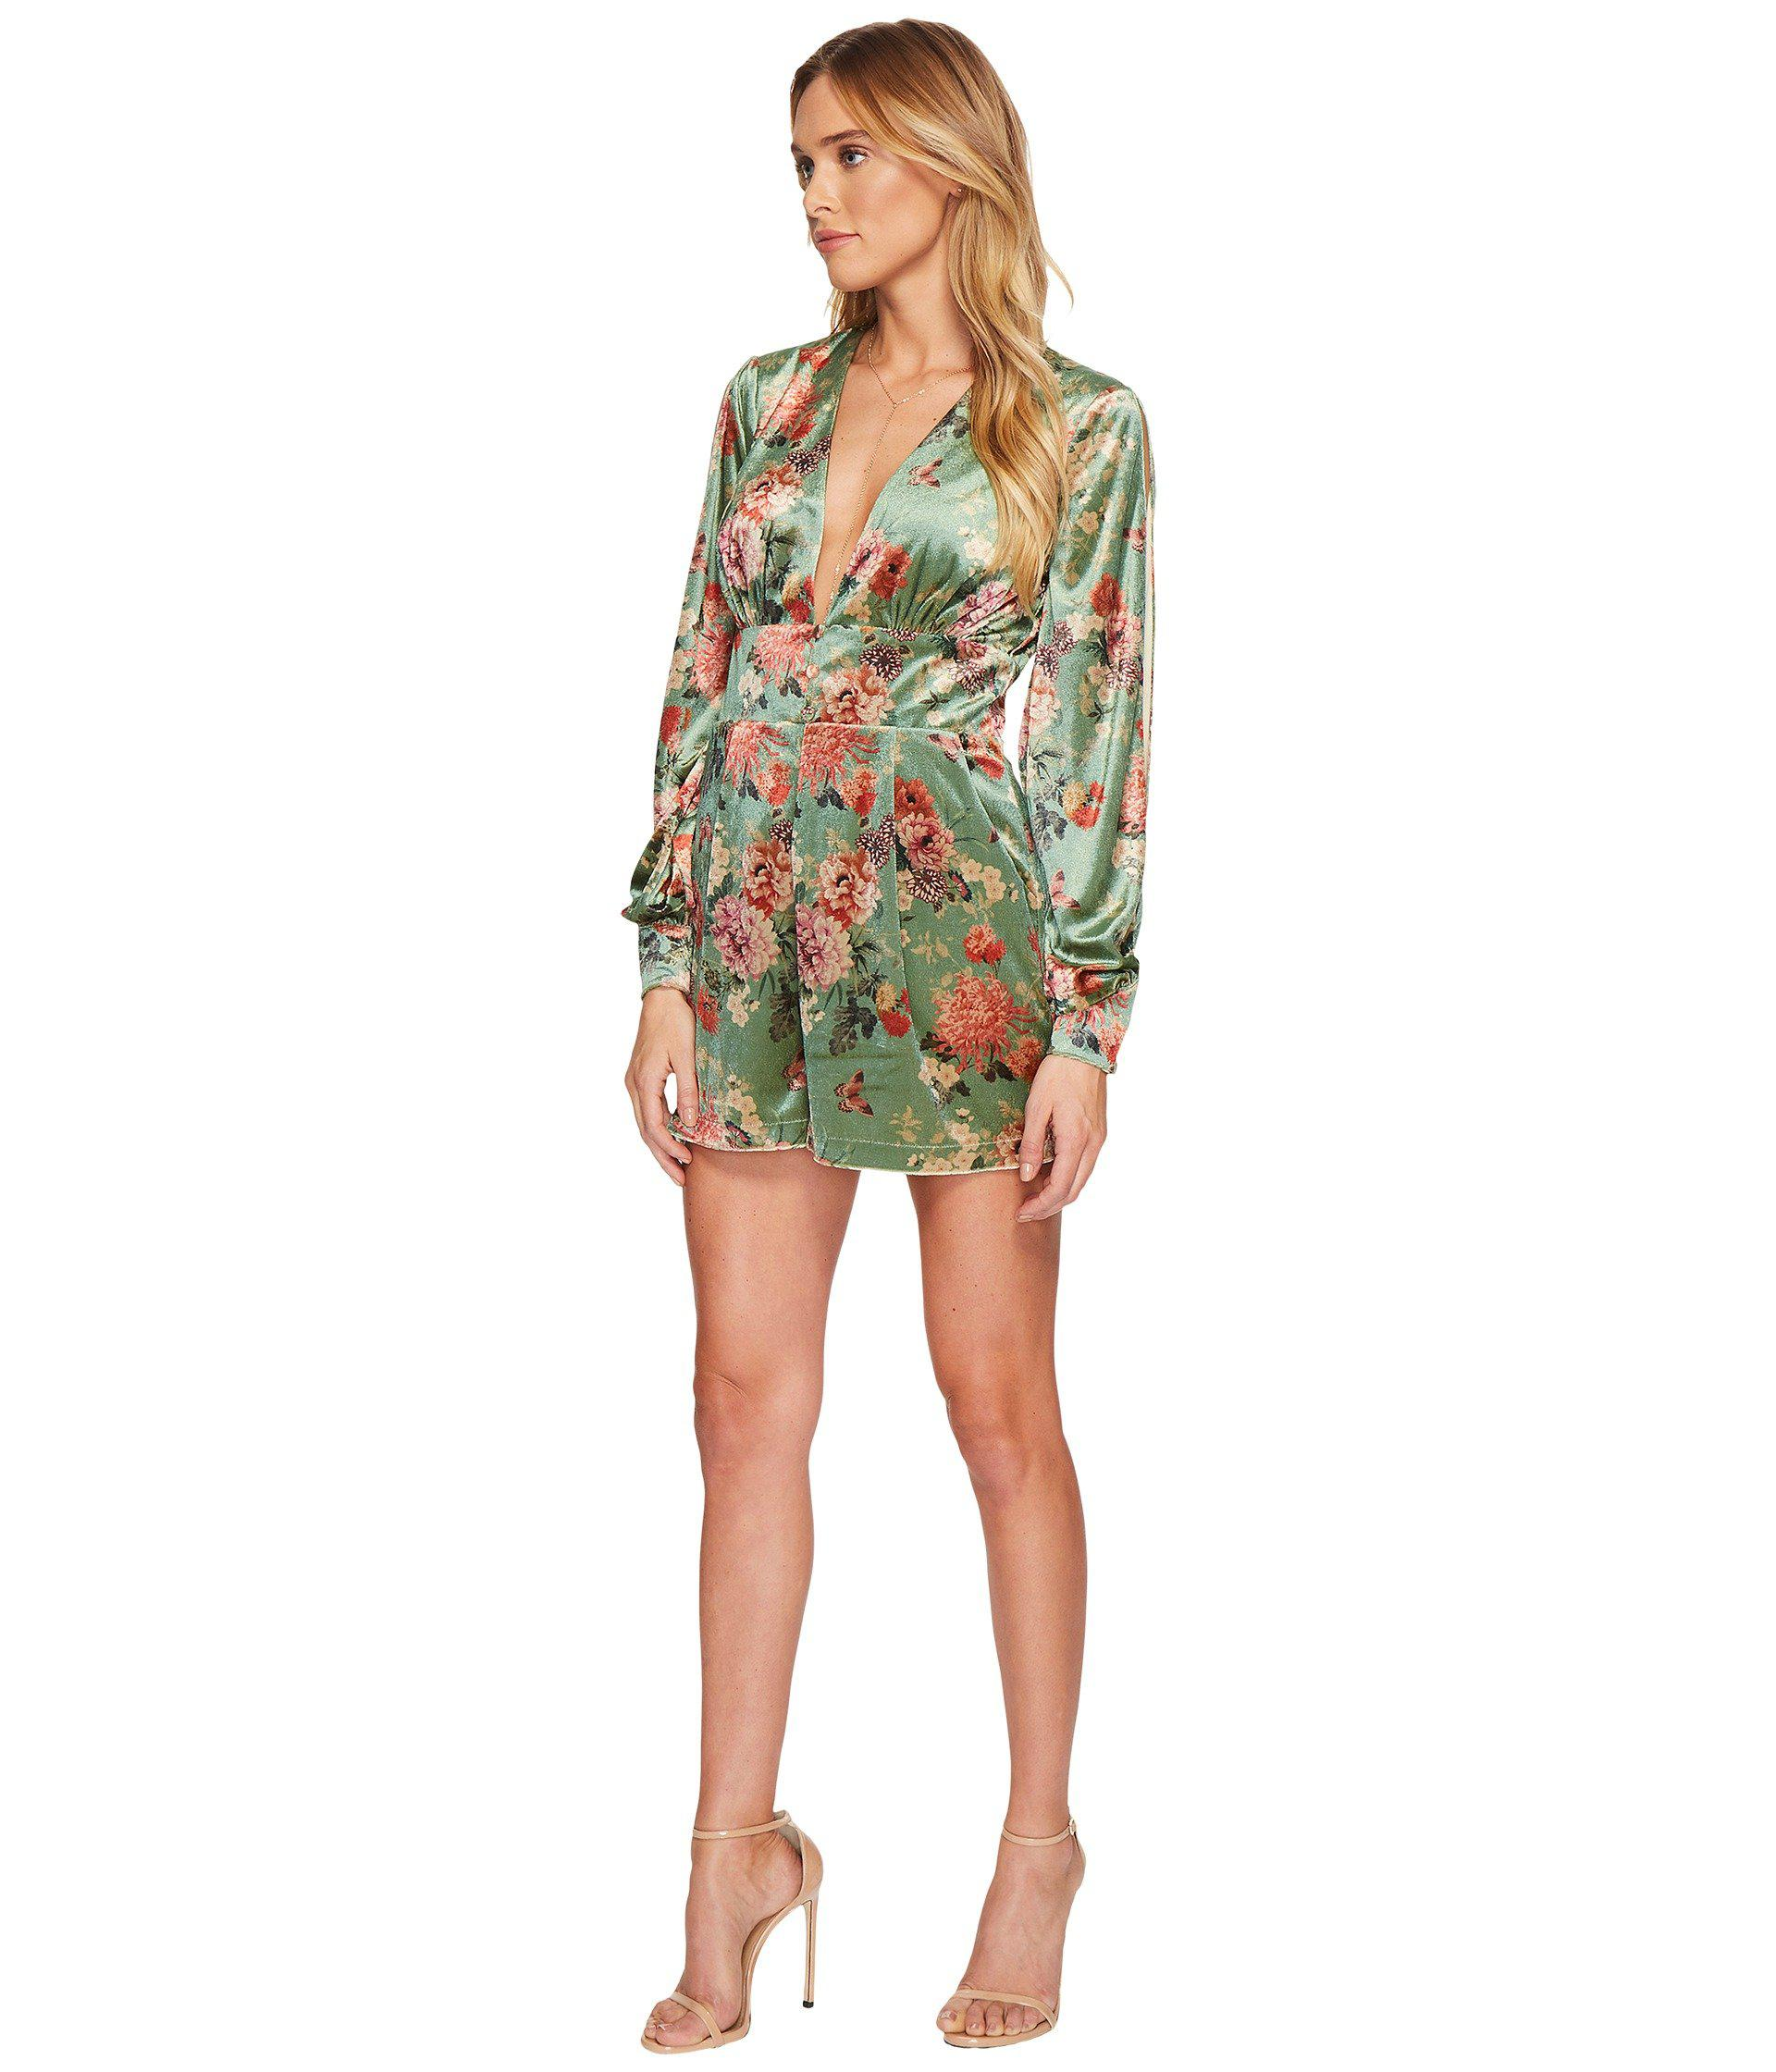 605a42b7dbc Lyst - Adelyn Rae Adela Romper in Green - Save 46%